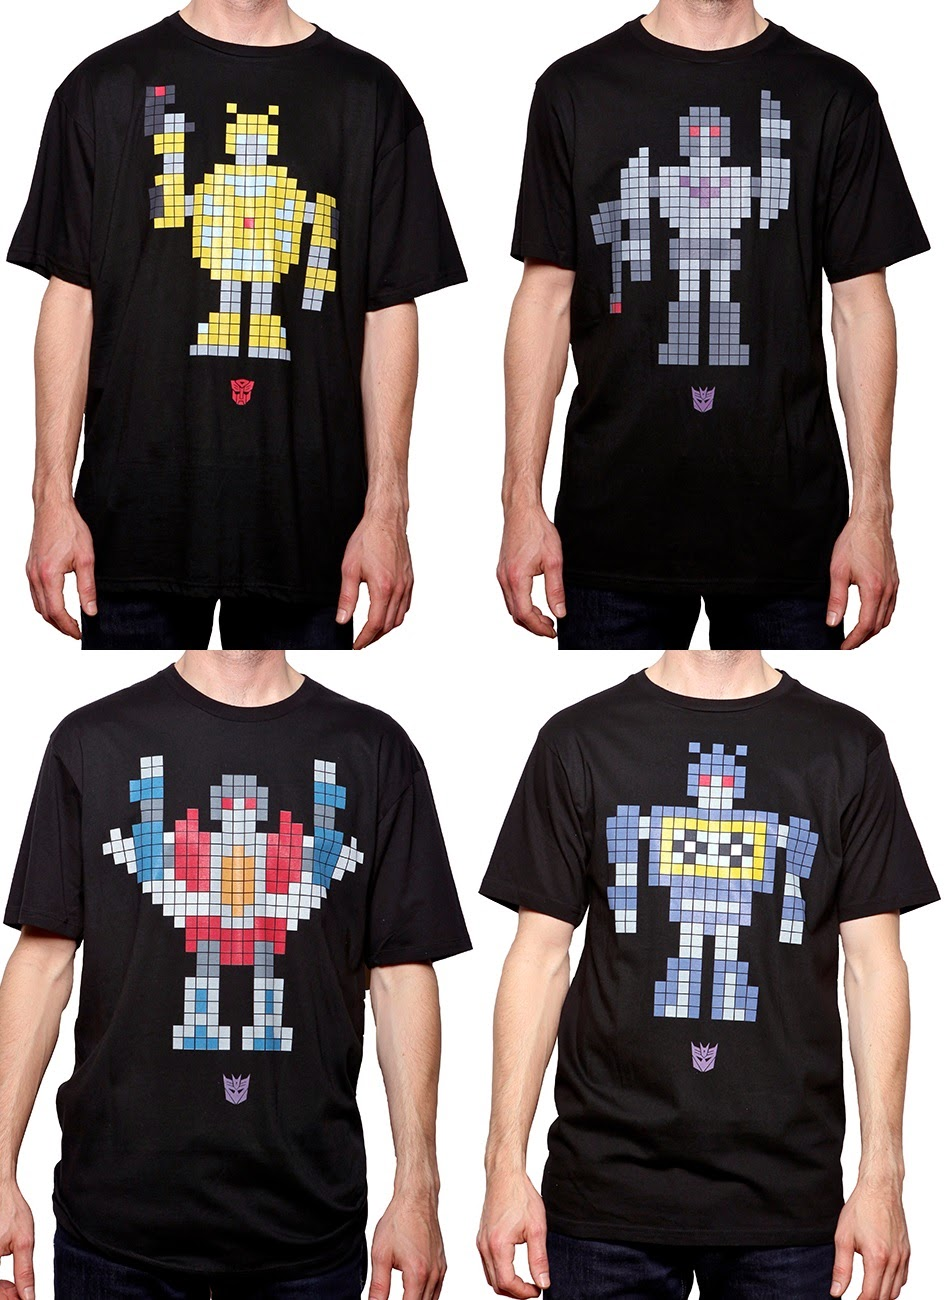 8 Bit Transformers T-Shirts by The Loyal Subjects - Bumblebee, Megatron, Starscream & Soundwave